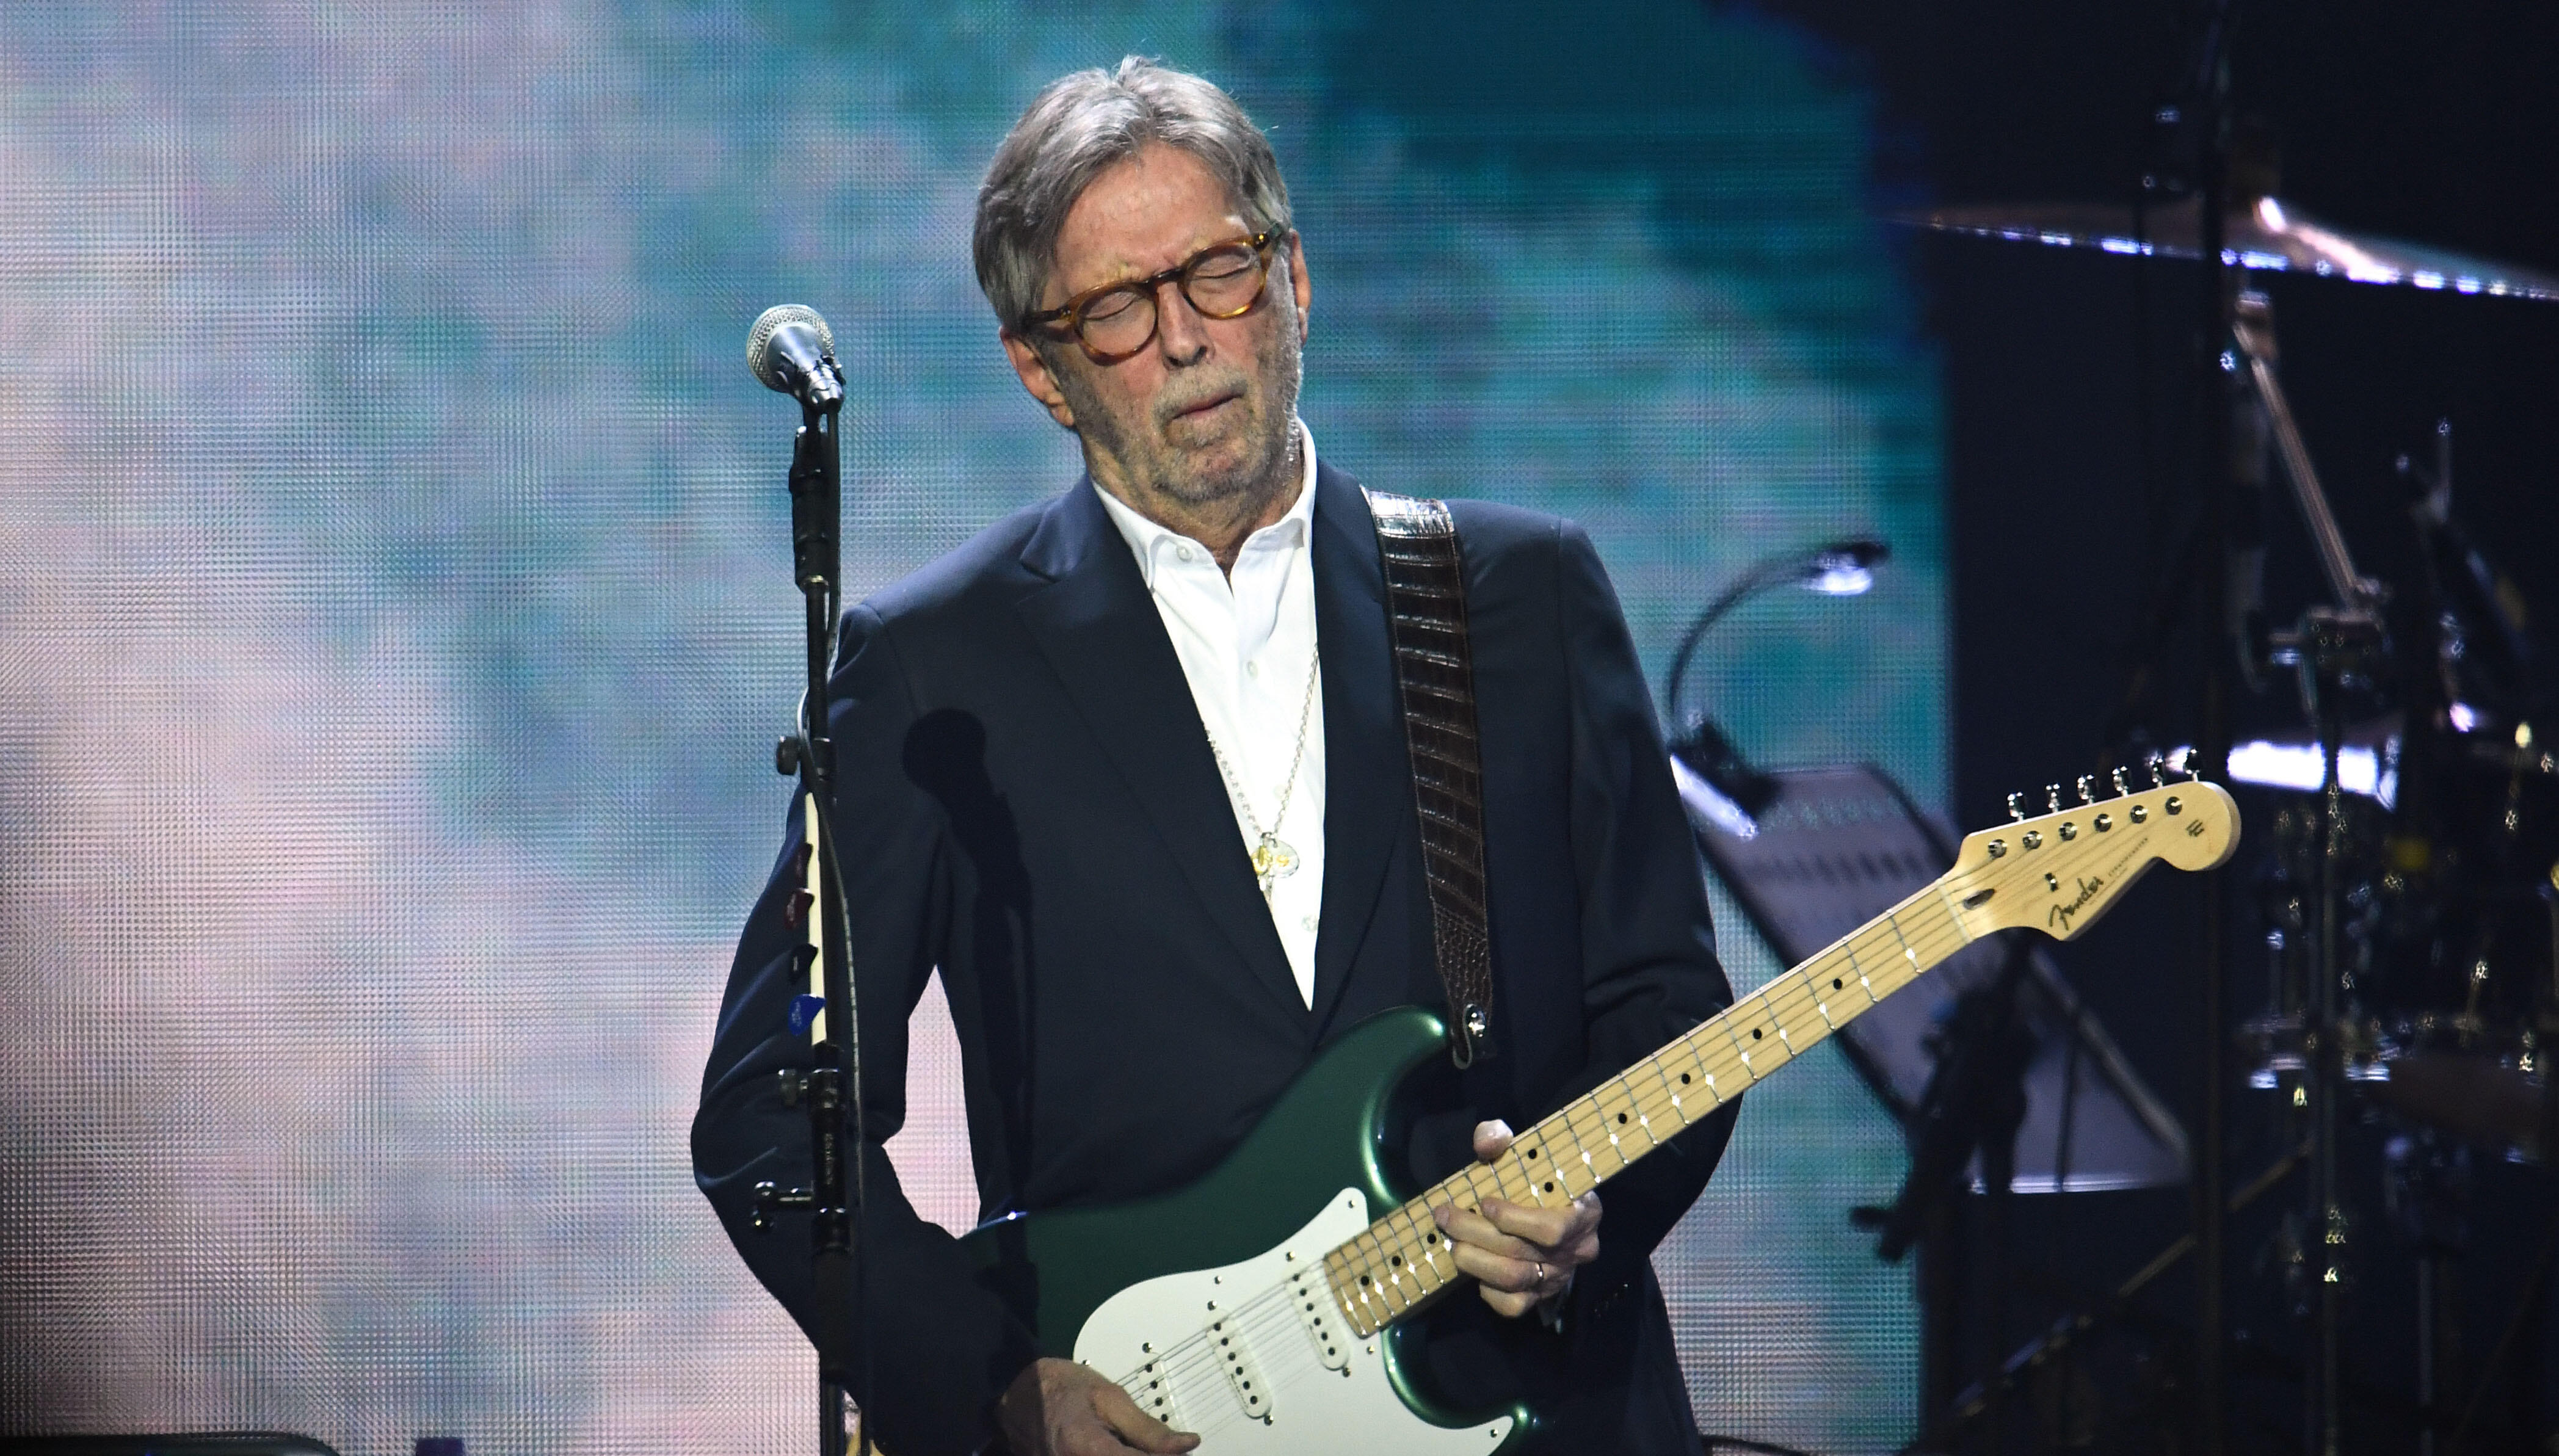 Eric Clapton Announces U.S. Tour Coming In September